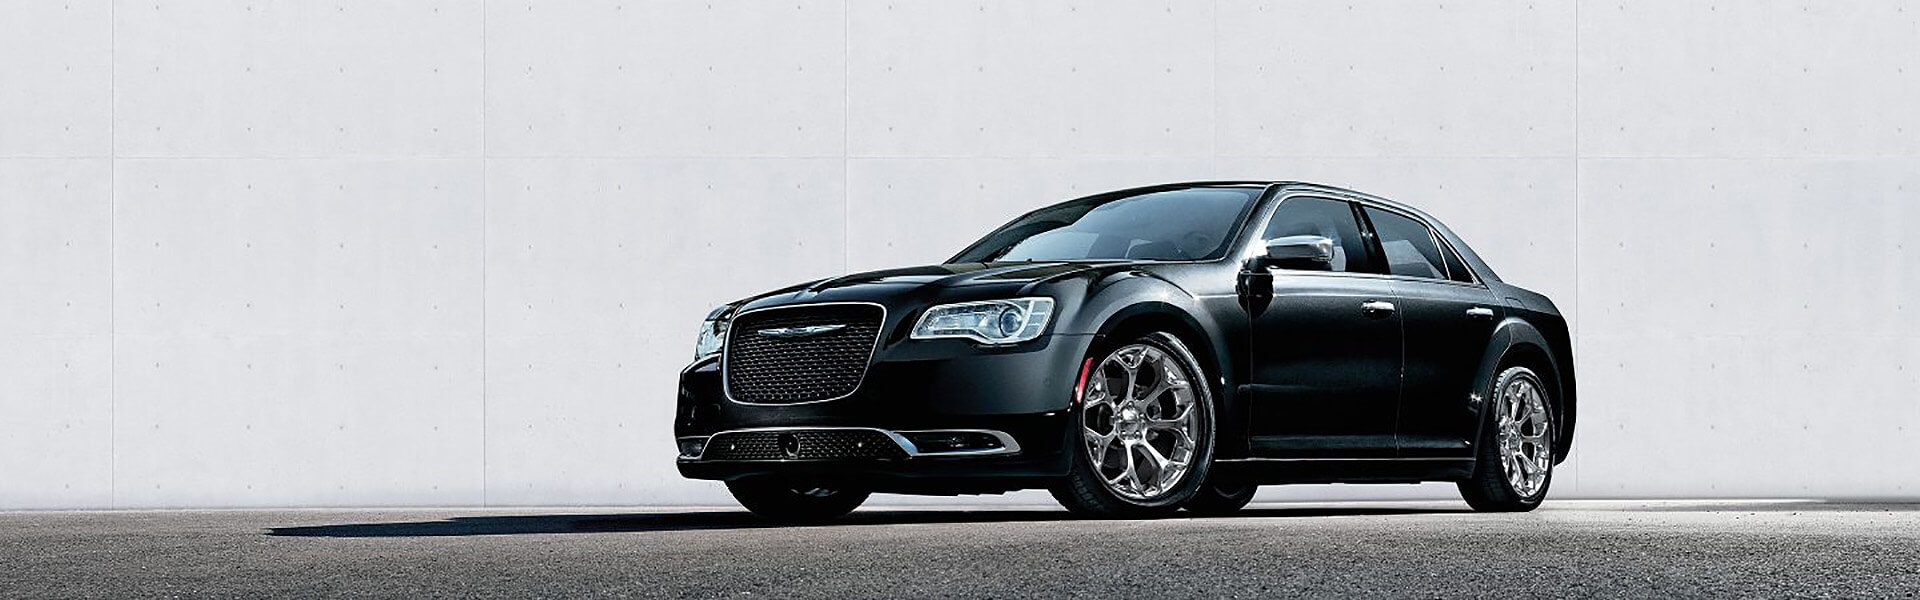 Chrysler 300C Luxury Technology